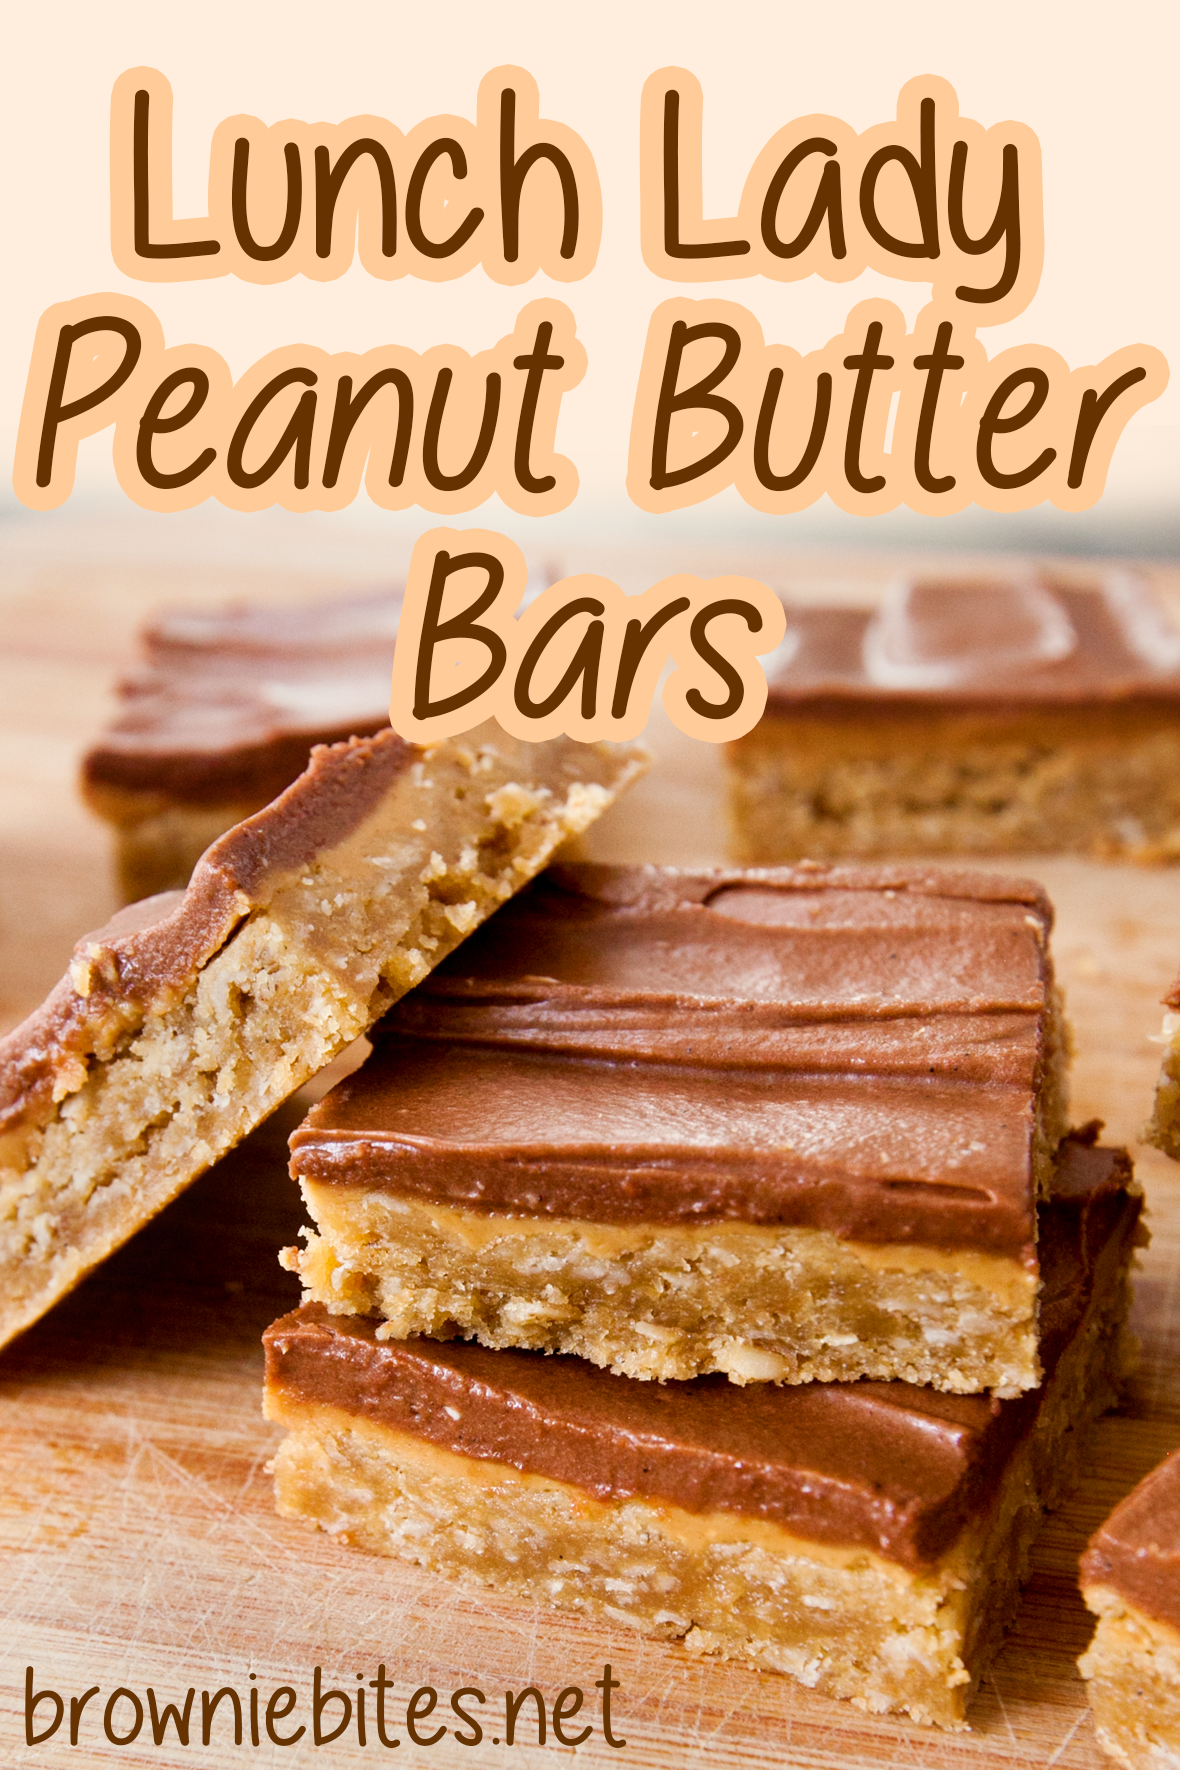 stack of lunch lady peanut butter bars with text for Pinterest